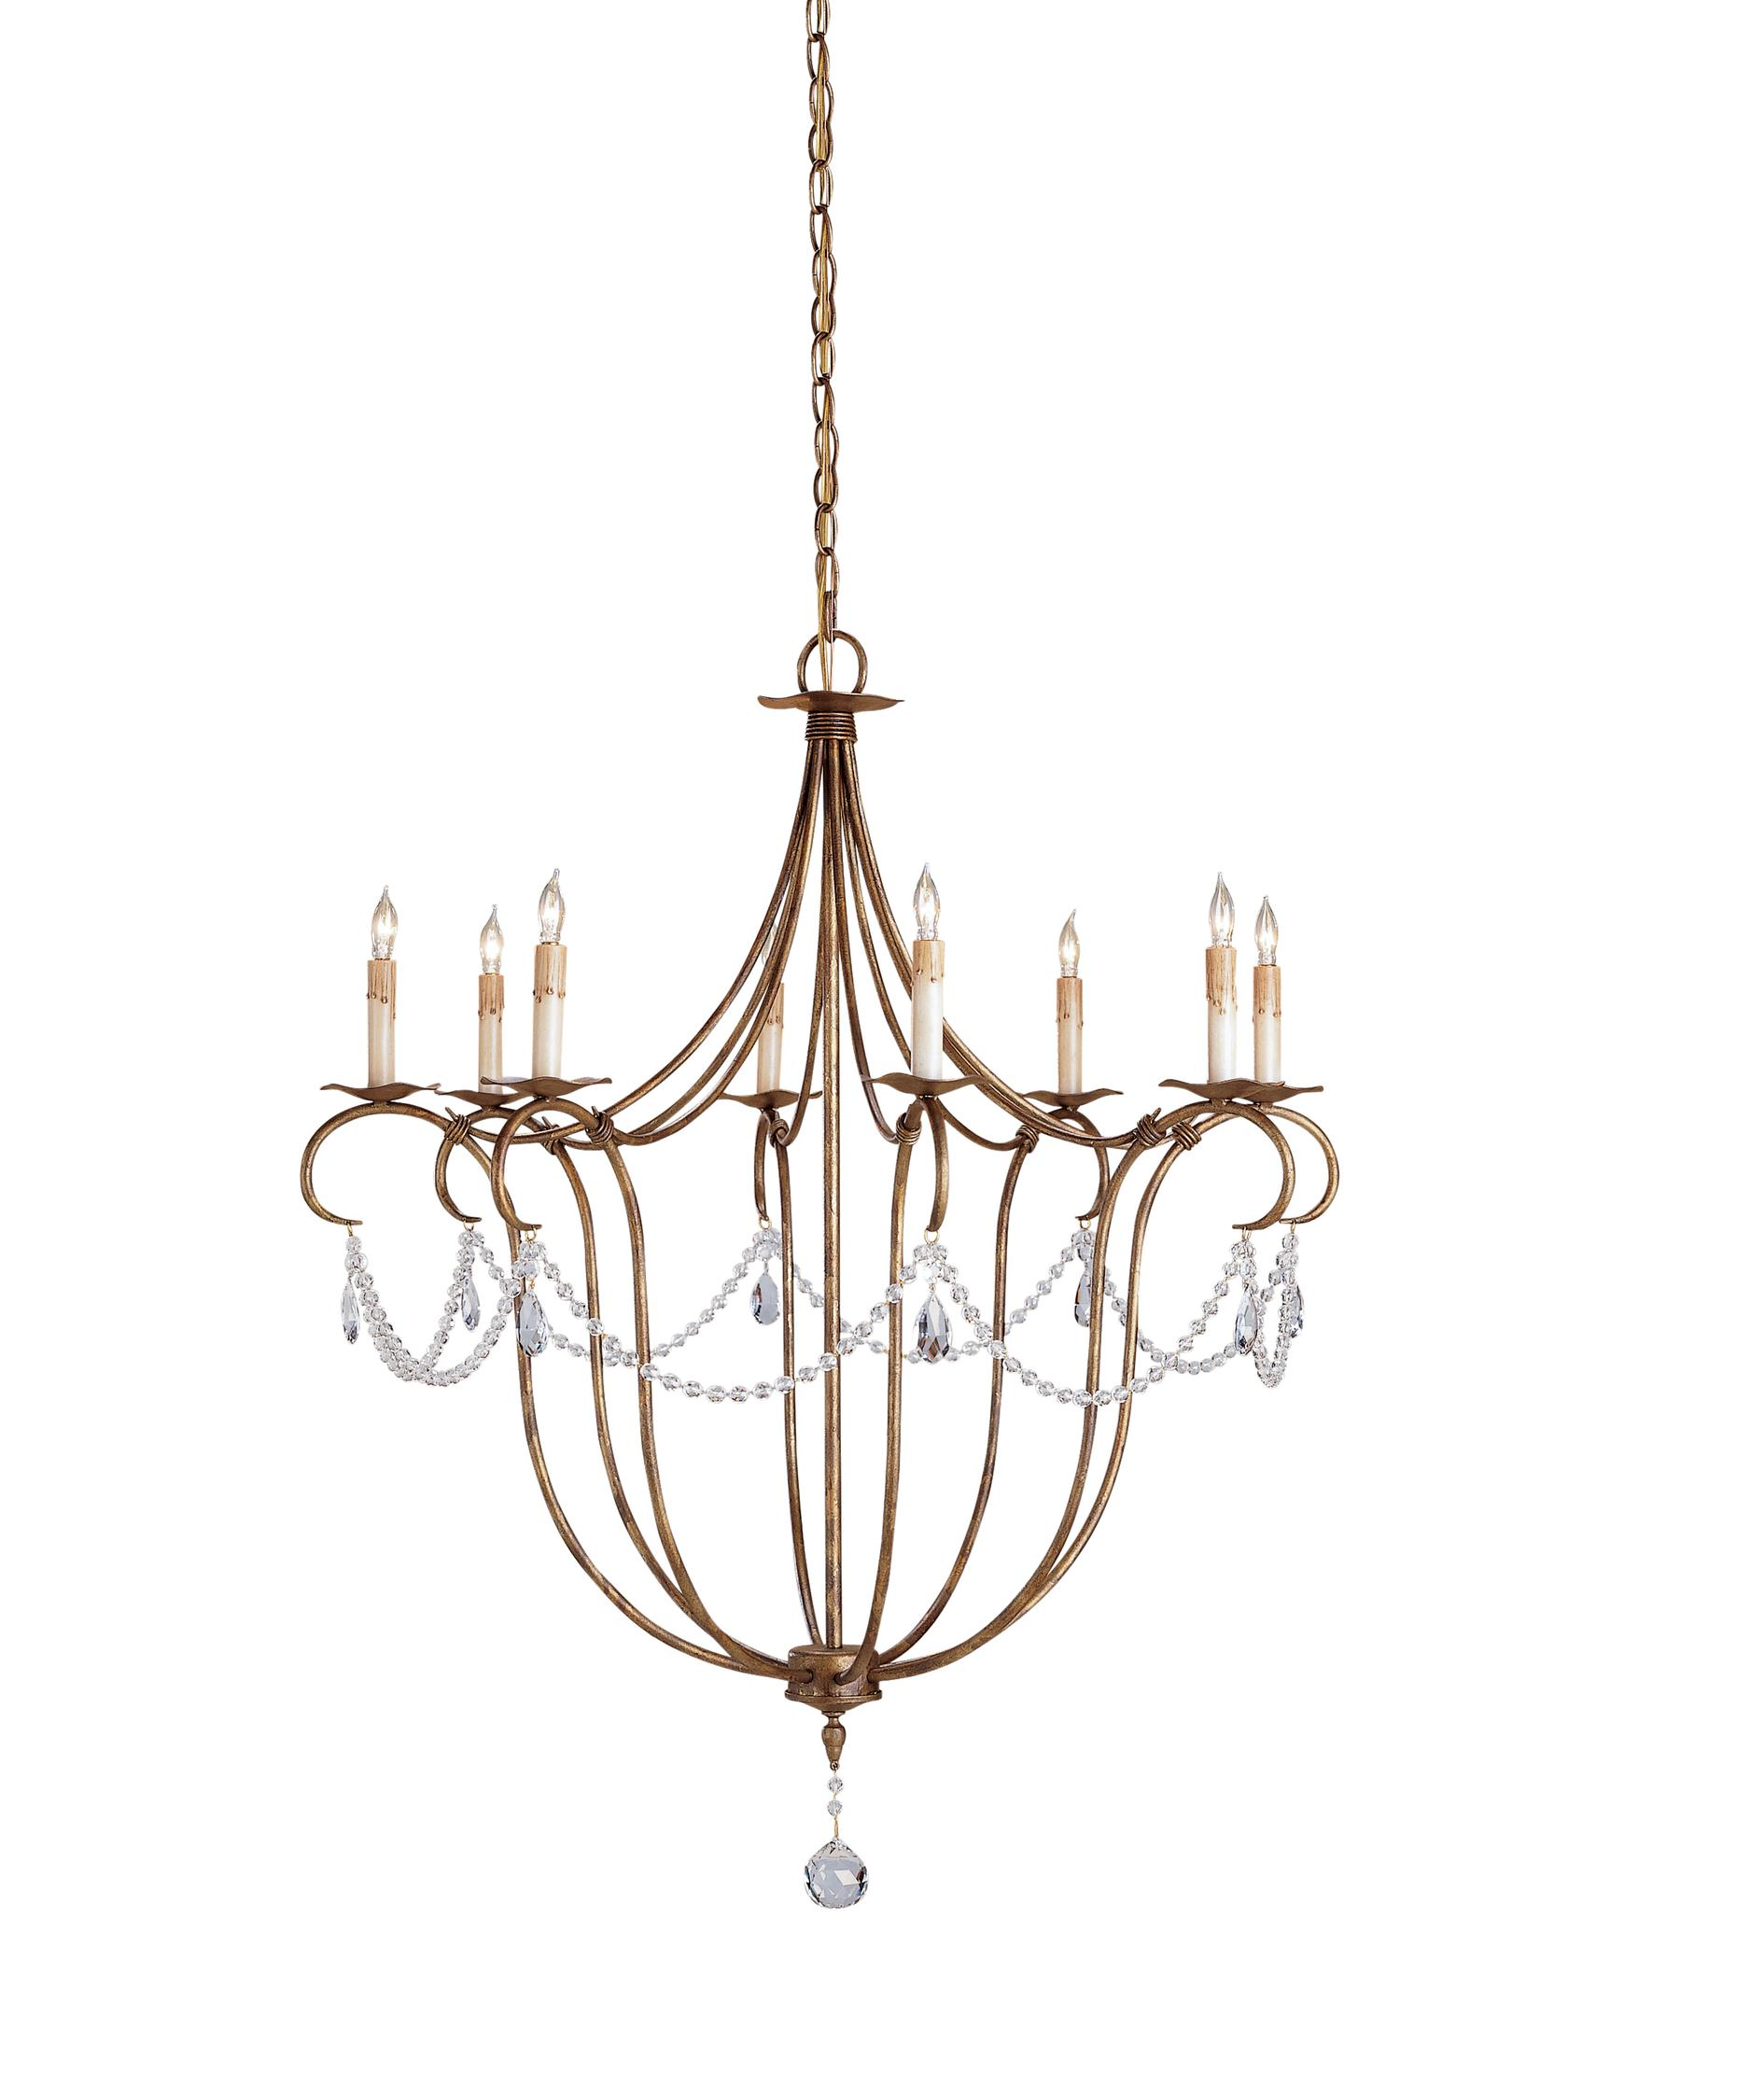 1875x2250 Currey And Company 9881 Crystal Lights 31 Inch Wide 8 Light